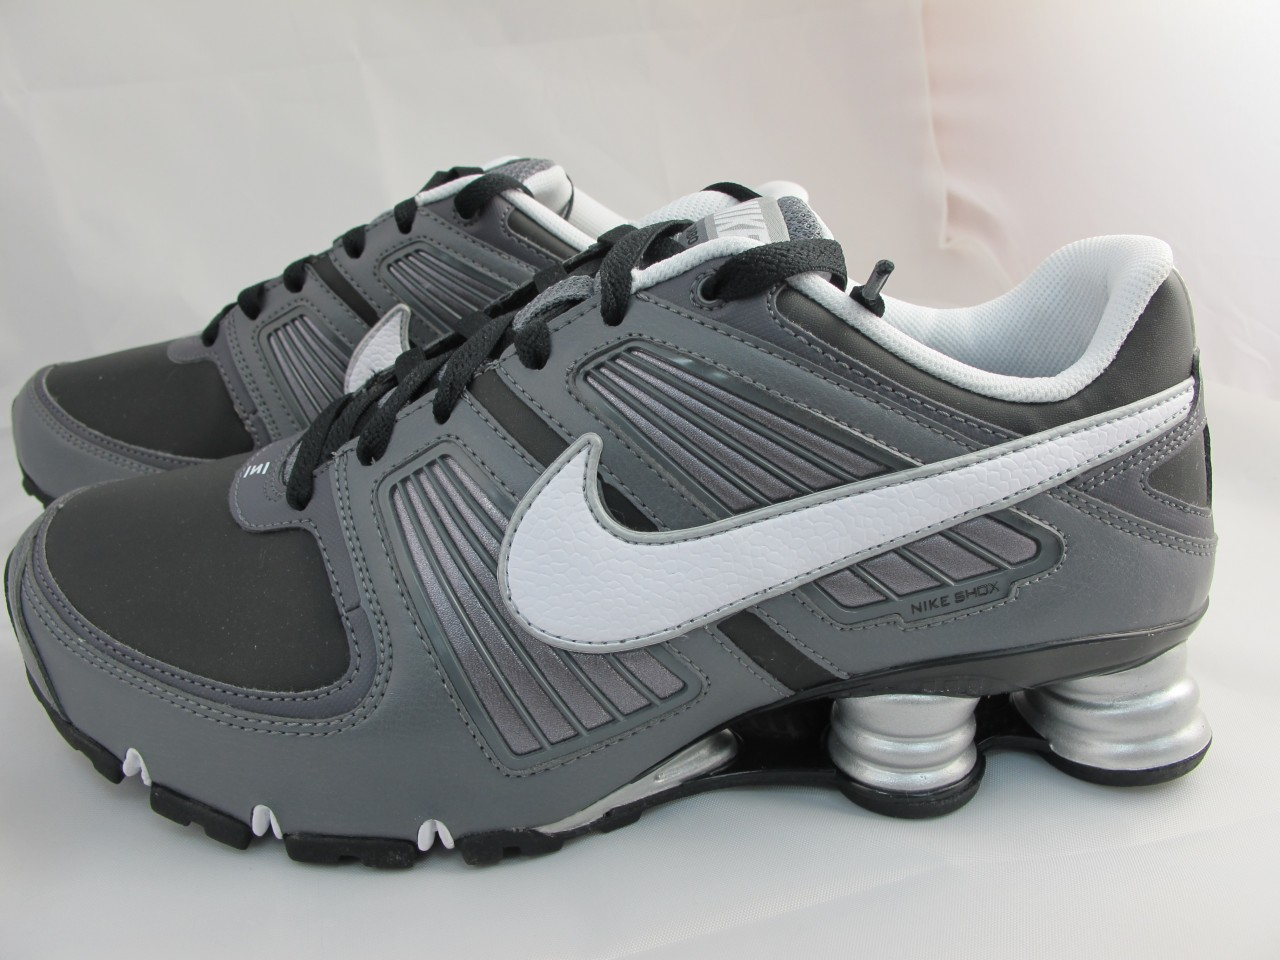 8f0b16adfe2718 Nike Shox Turbo Plus 9